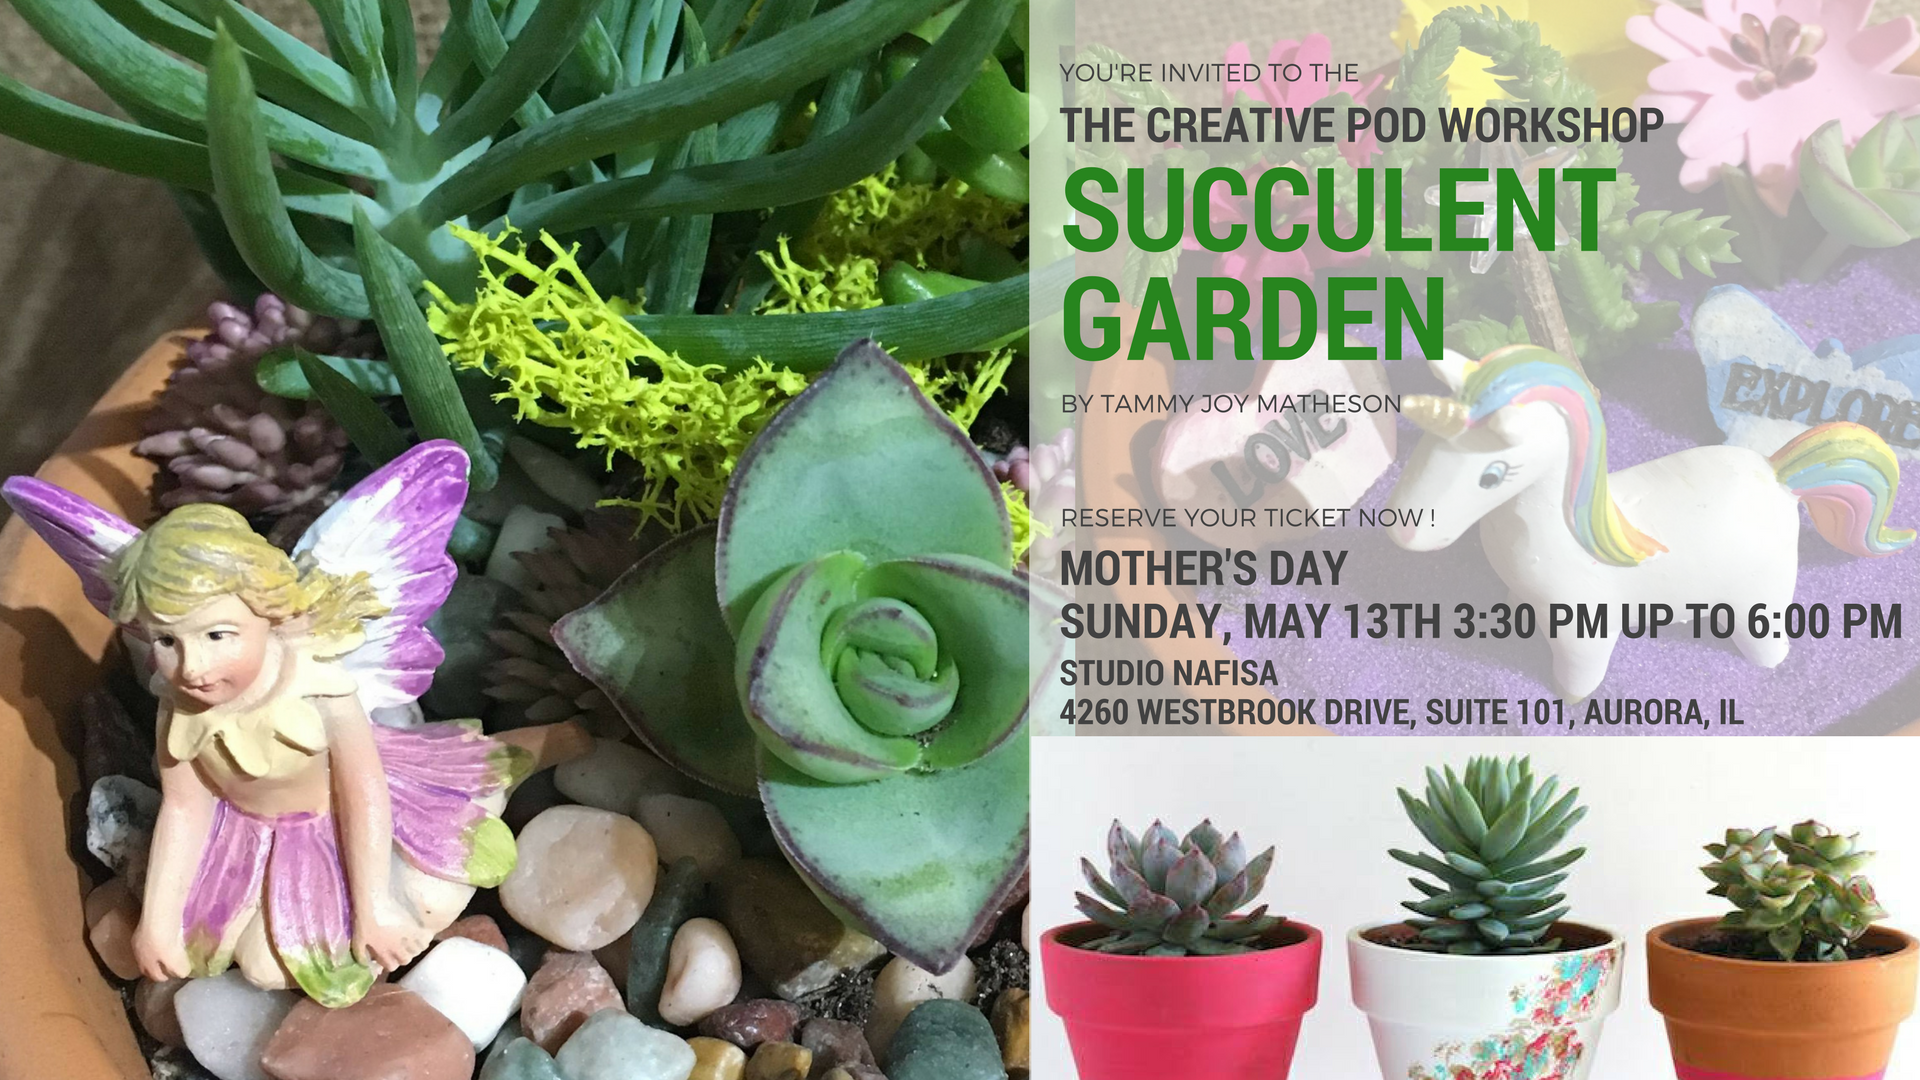 Succulent Garden Workshop - Mom and little ones make succulent gardens. Create your own potted garden with succulents and mini garden accessories.